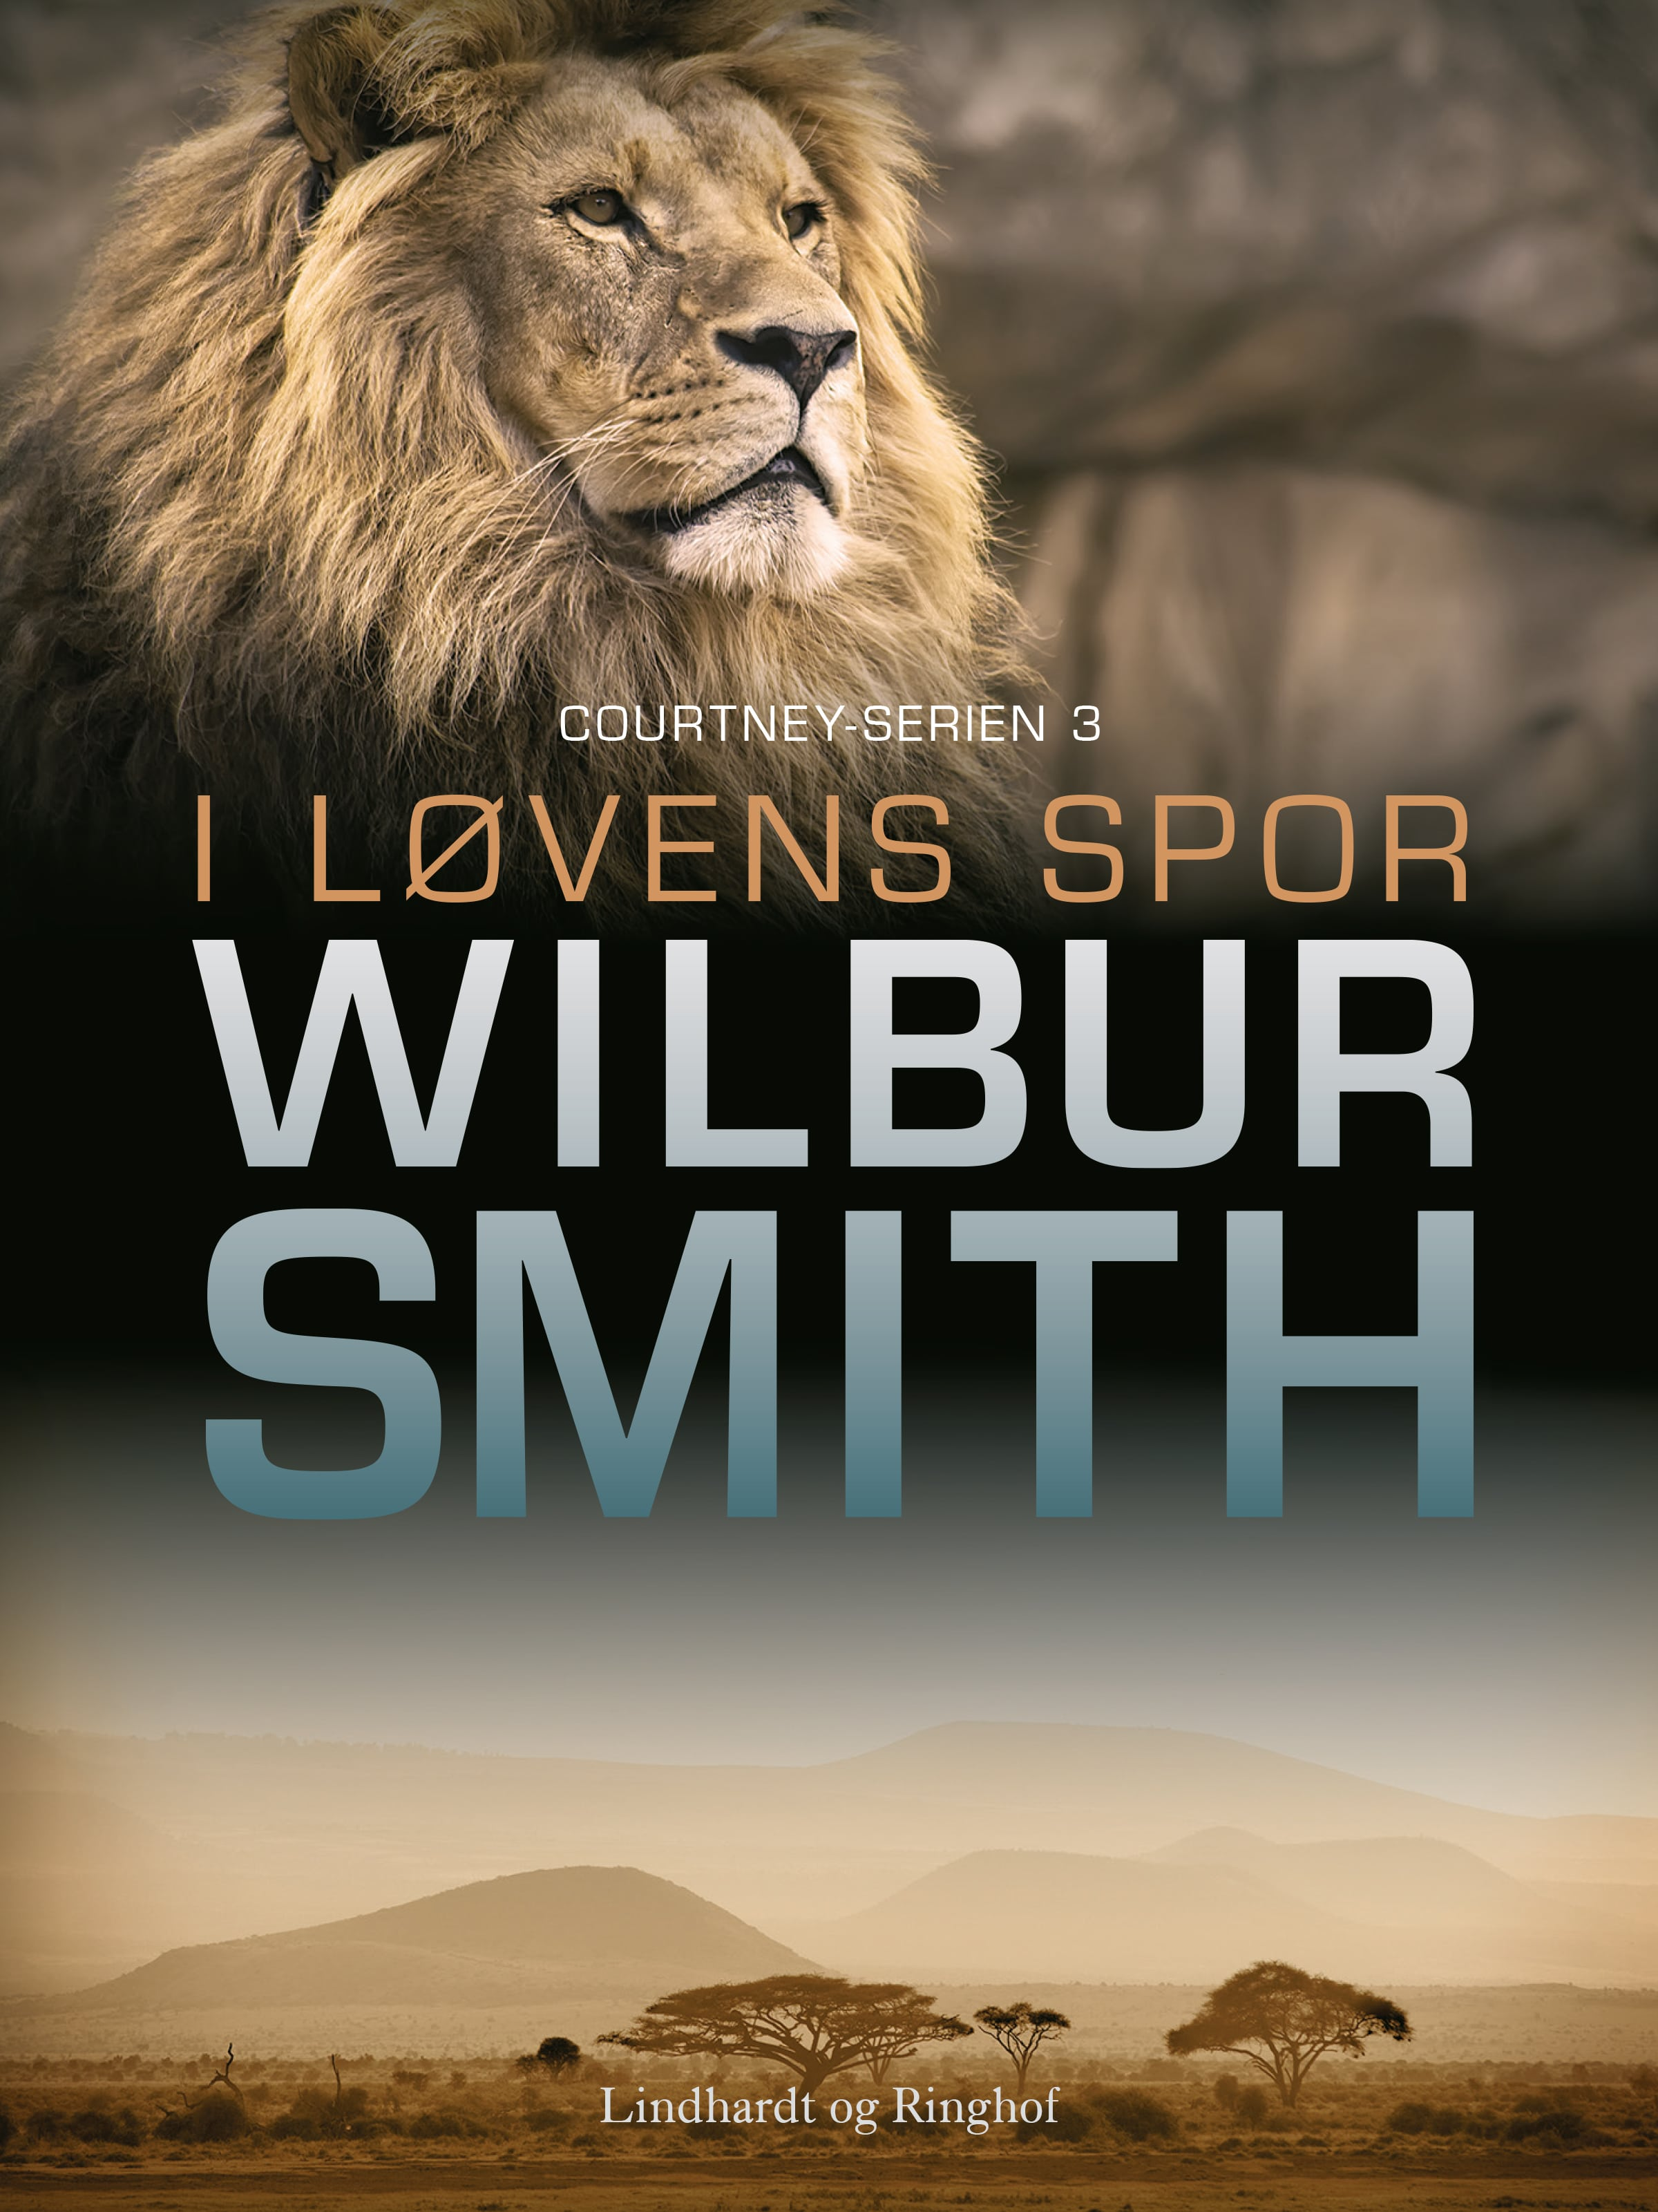 Wilbur Smith, Courtney-serien, i løvens spor